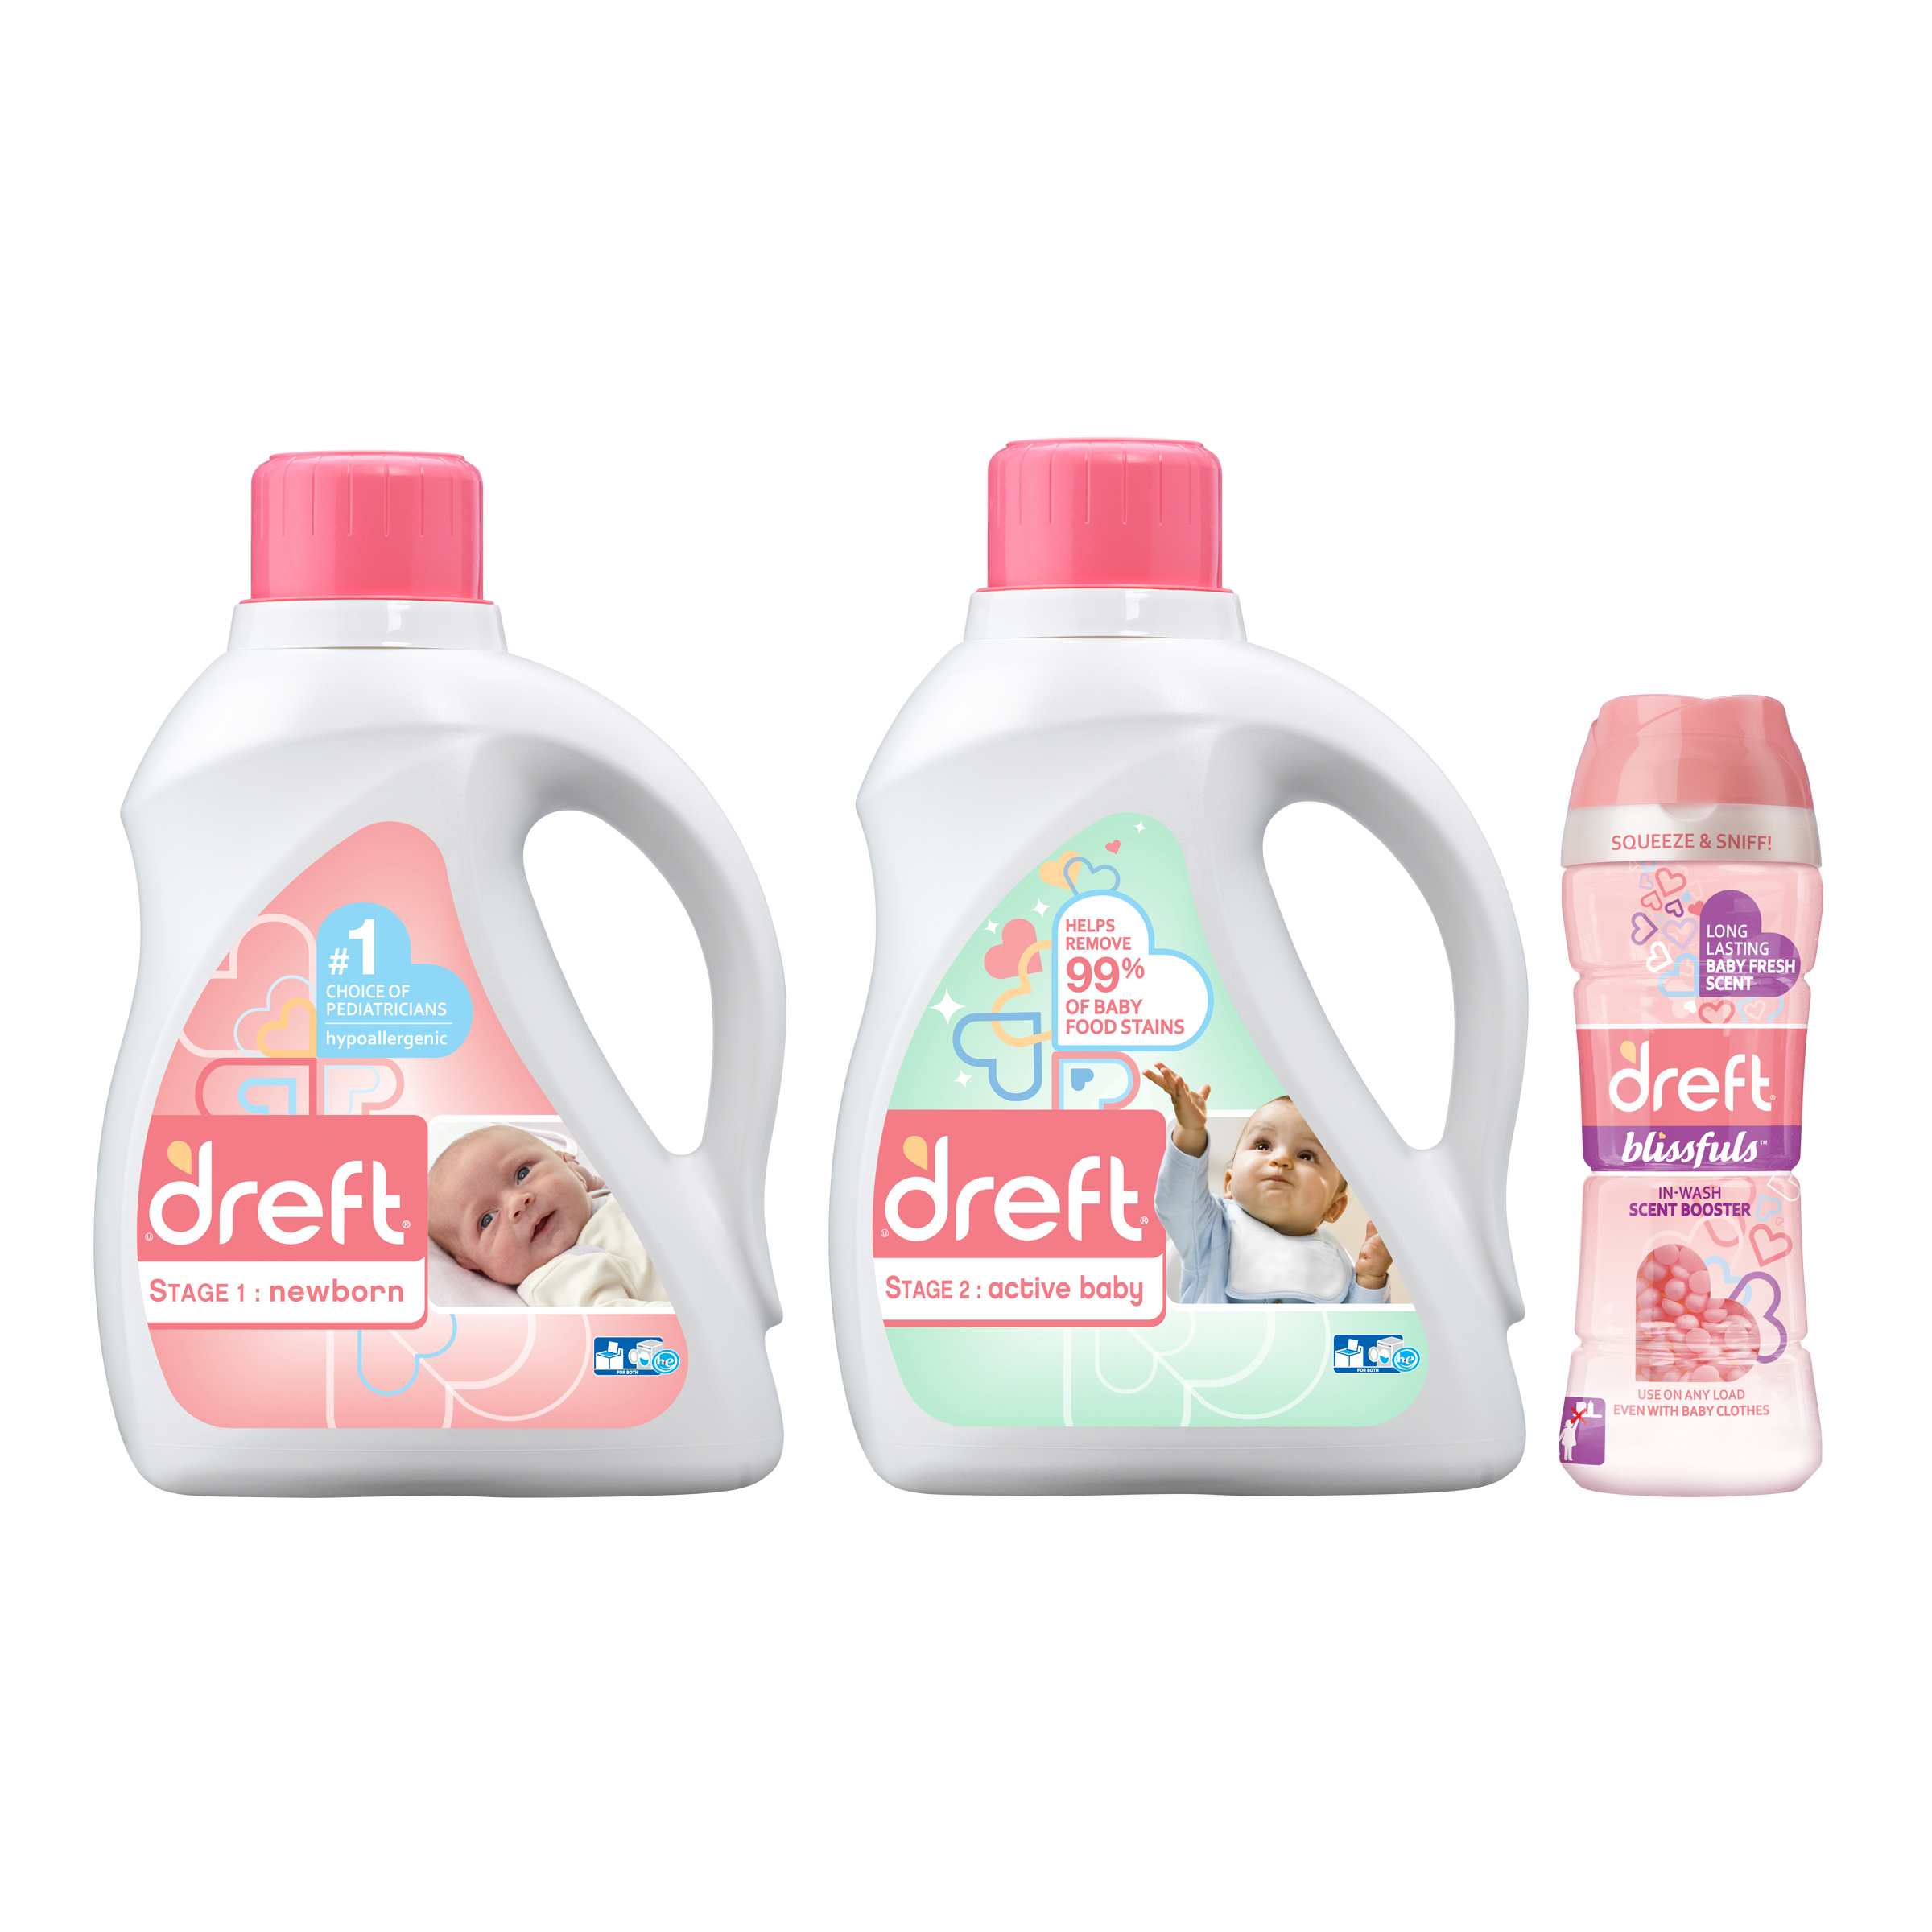 Dreft and Parent's Magazine Host America's Messiest Baby Contest! #Messiestbabycontest